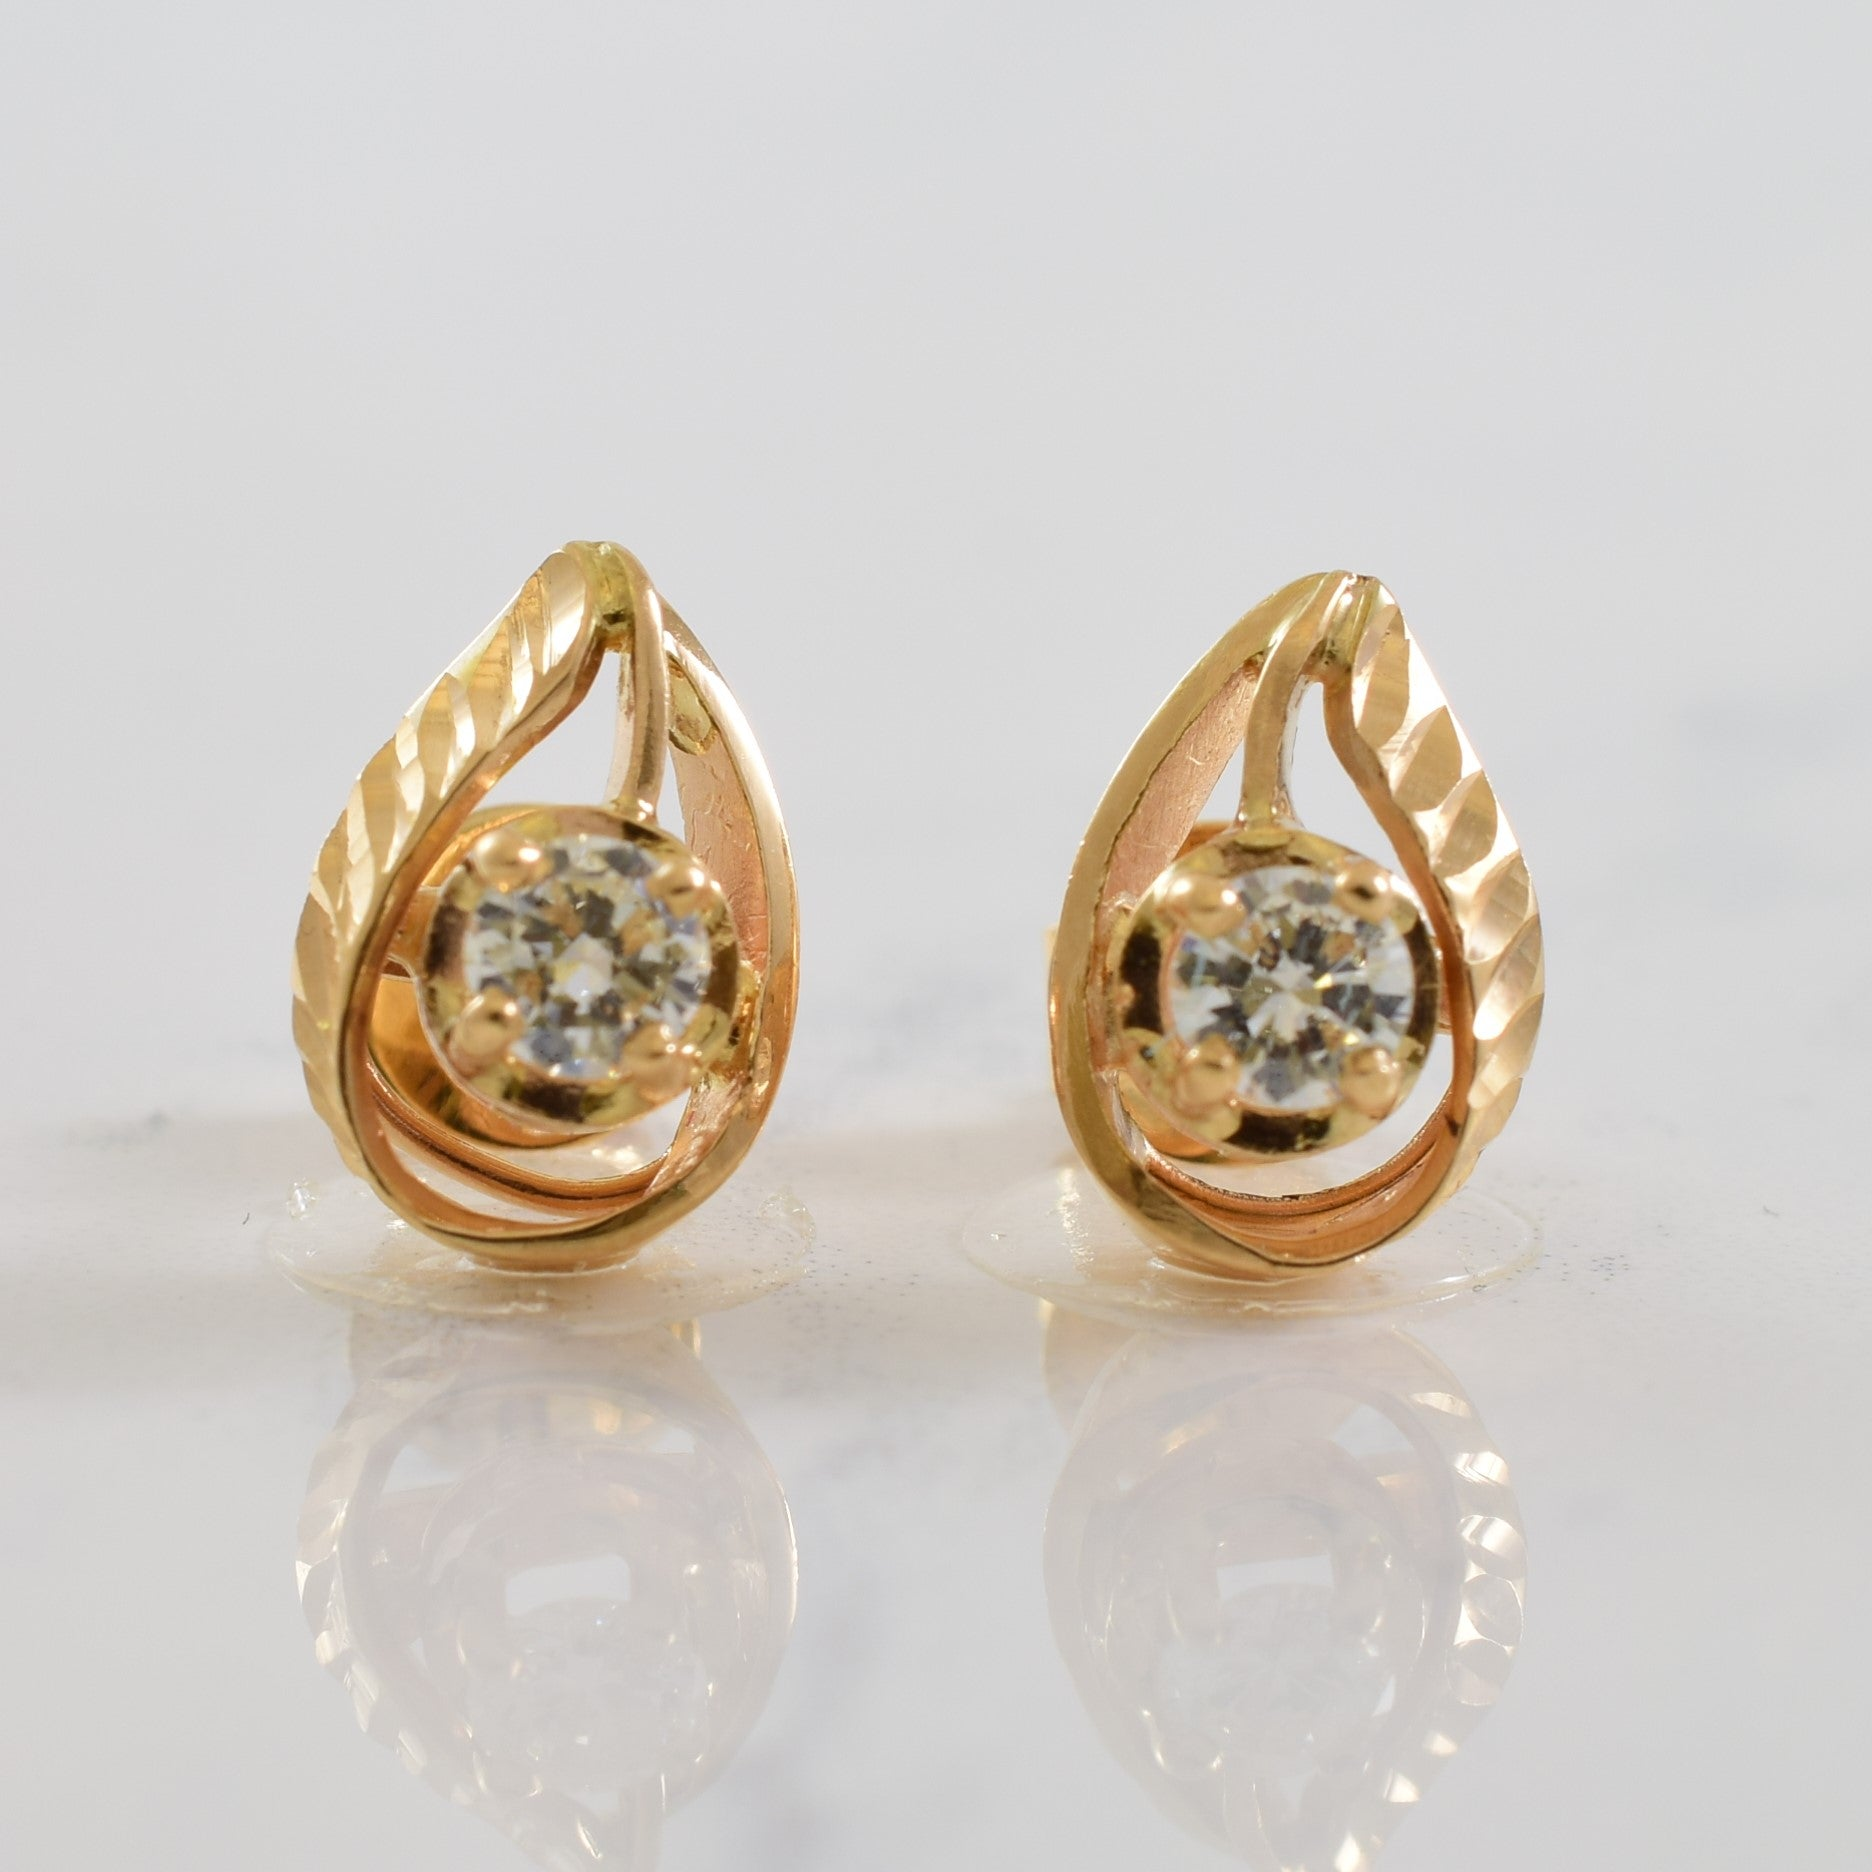 Tear Drop Diamond Stud Earrings | 0.40ctw |